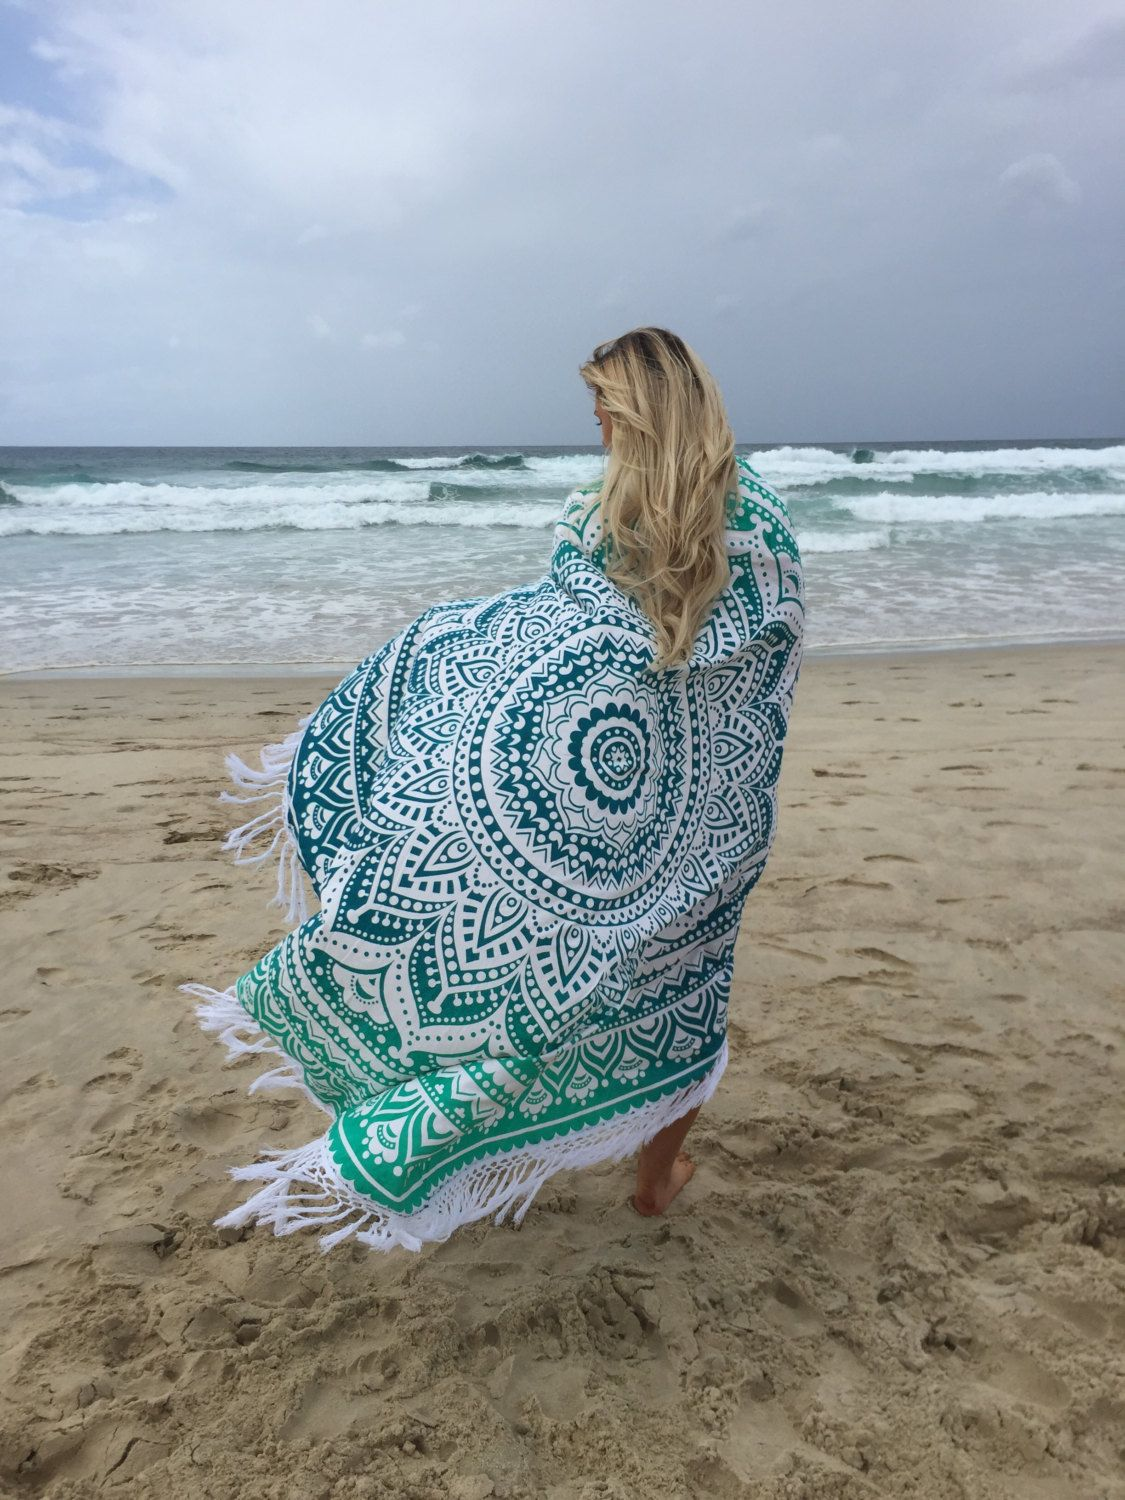 Soft Cotton Light Weighted Sea Green Ombre Mandala Roun Beach Throw To Add Extra Fun Your Party Shipping Worldwide Usa Uk Canada